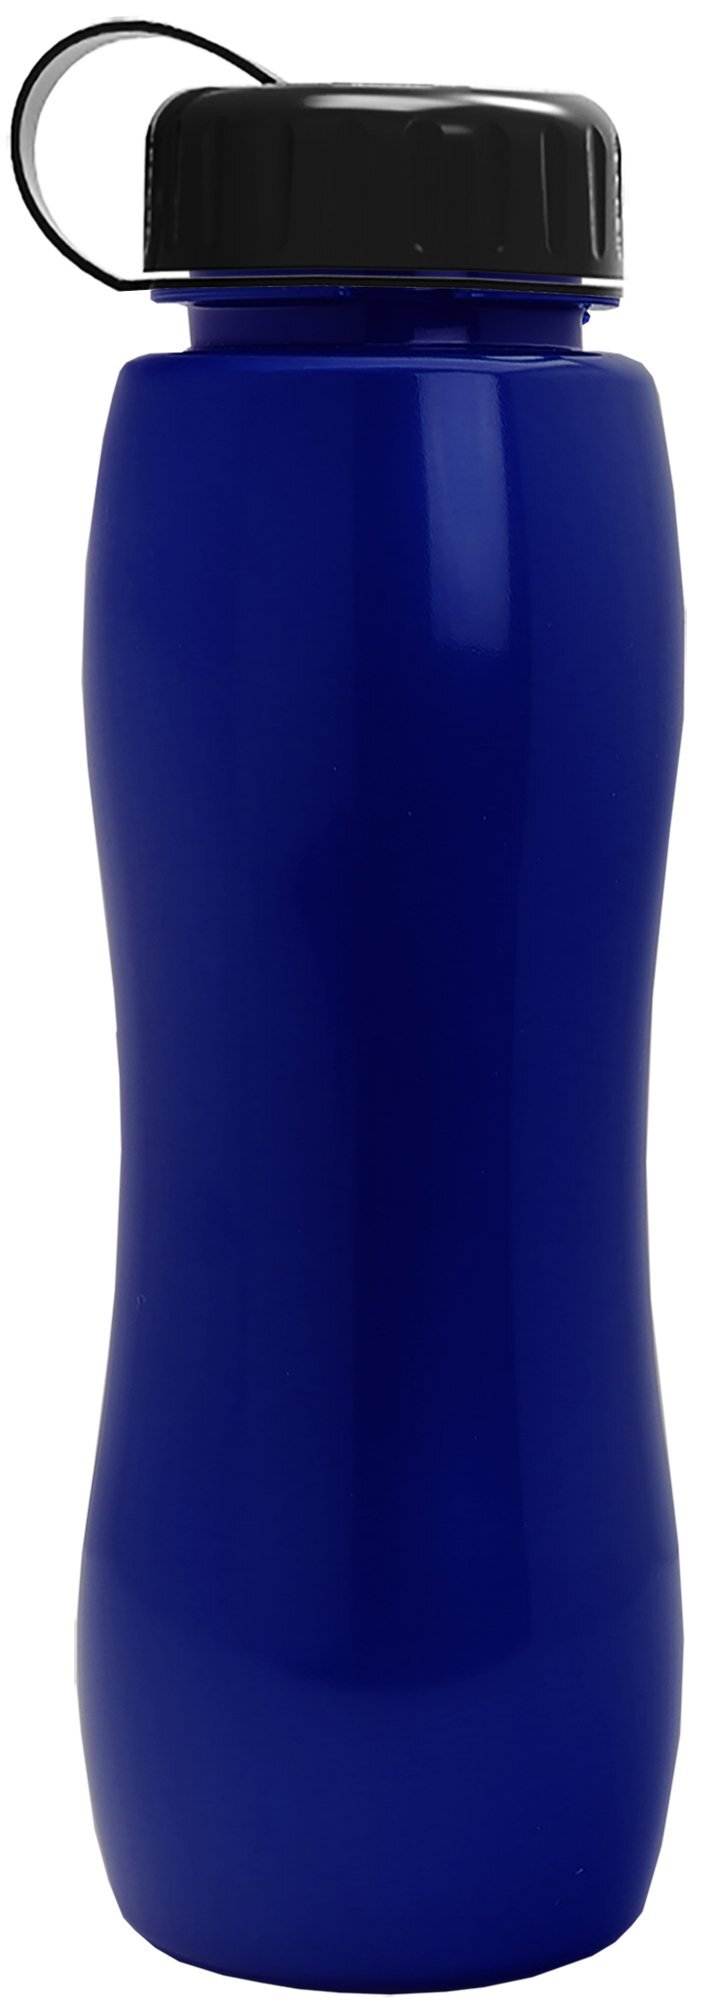 Wave Pearlescent Tritan™ Bottle, 25oz. - Tethered Lid